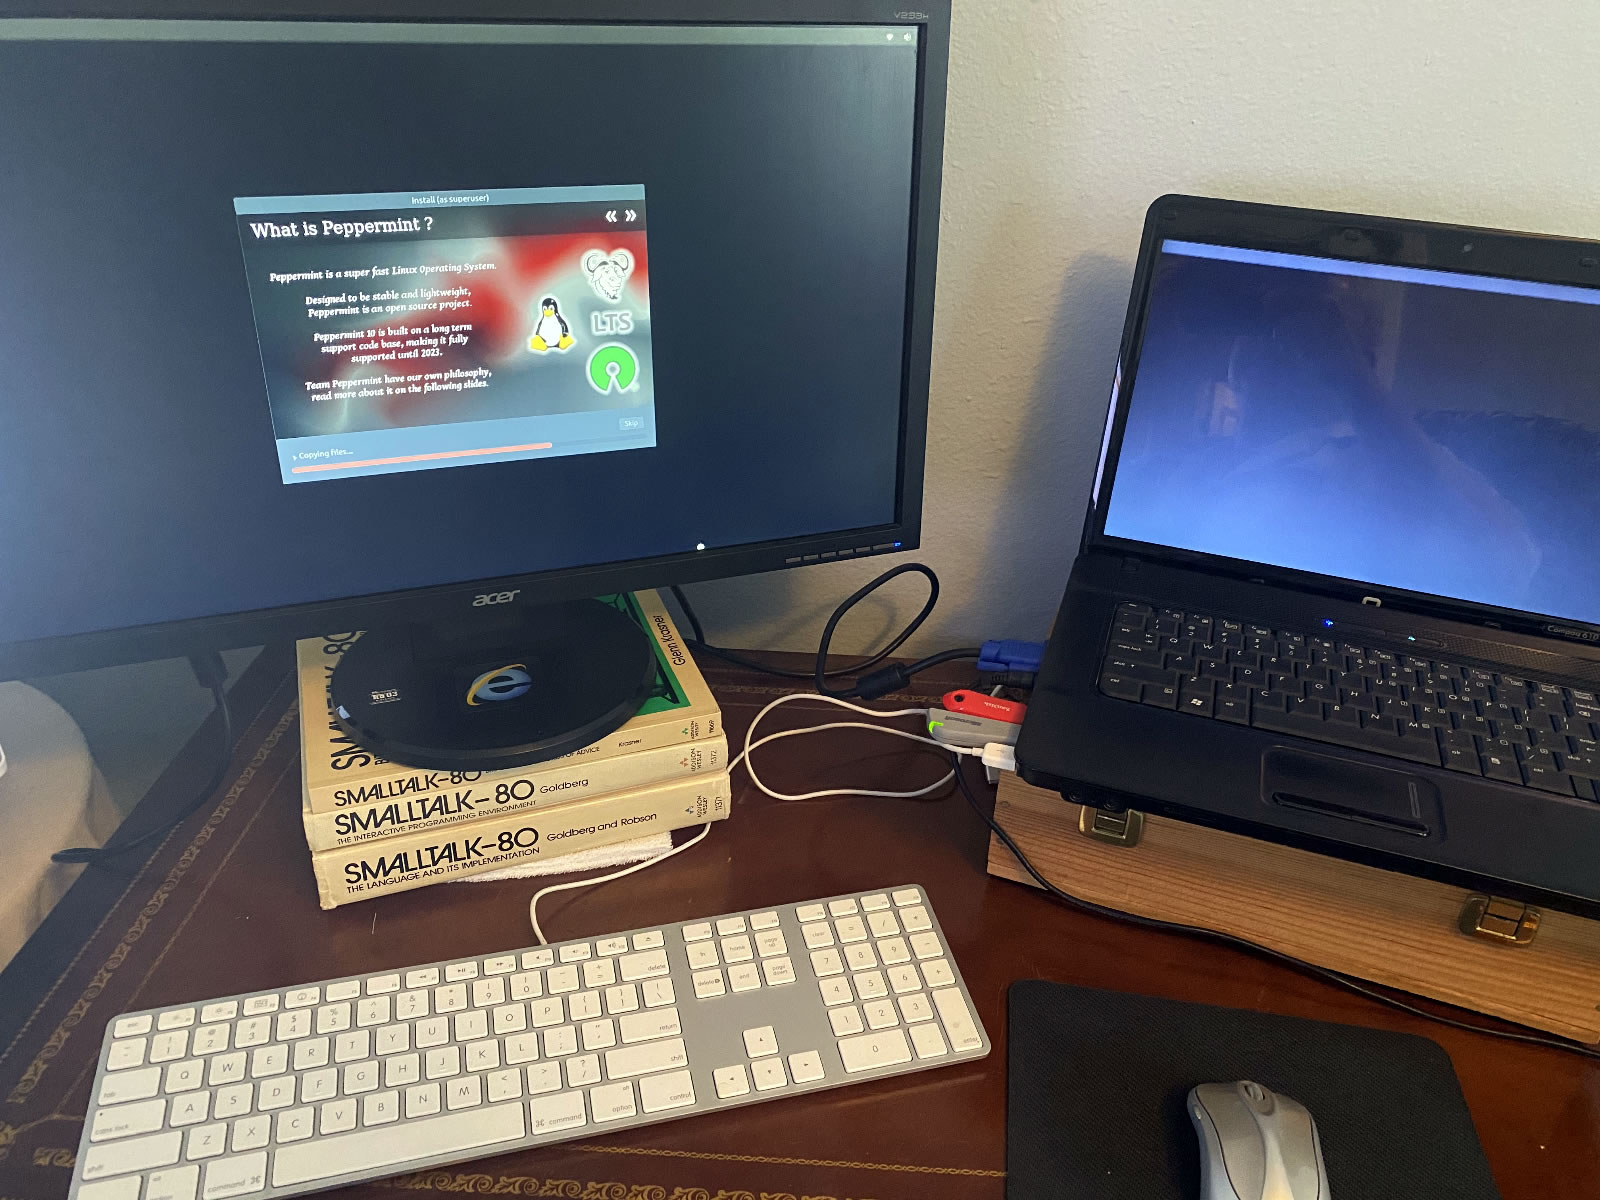 Desk with a Compaq 610 laptop on a wooden box, Acer VGA monitor on a stack of Smalltalk-80 books, an Apple wired keyboard and a Microsoft mouse.